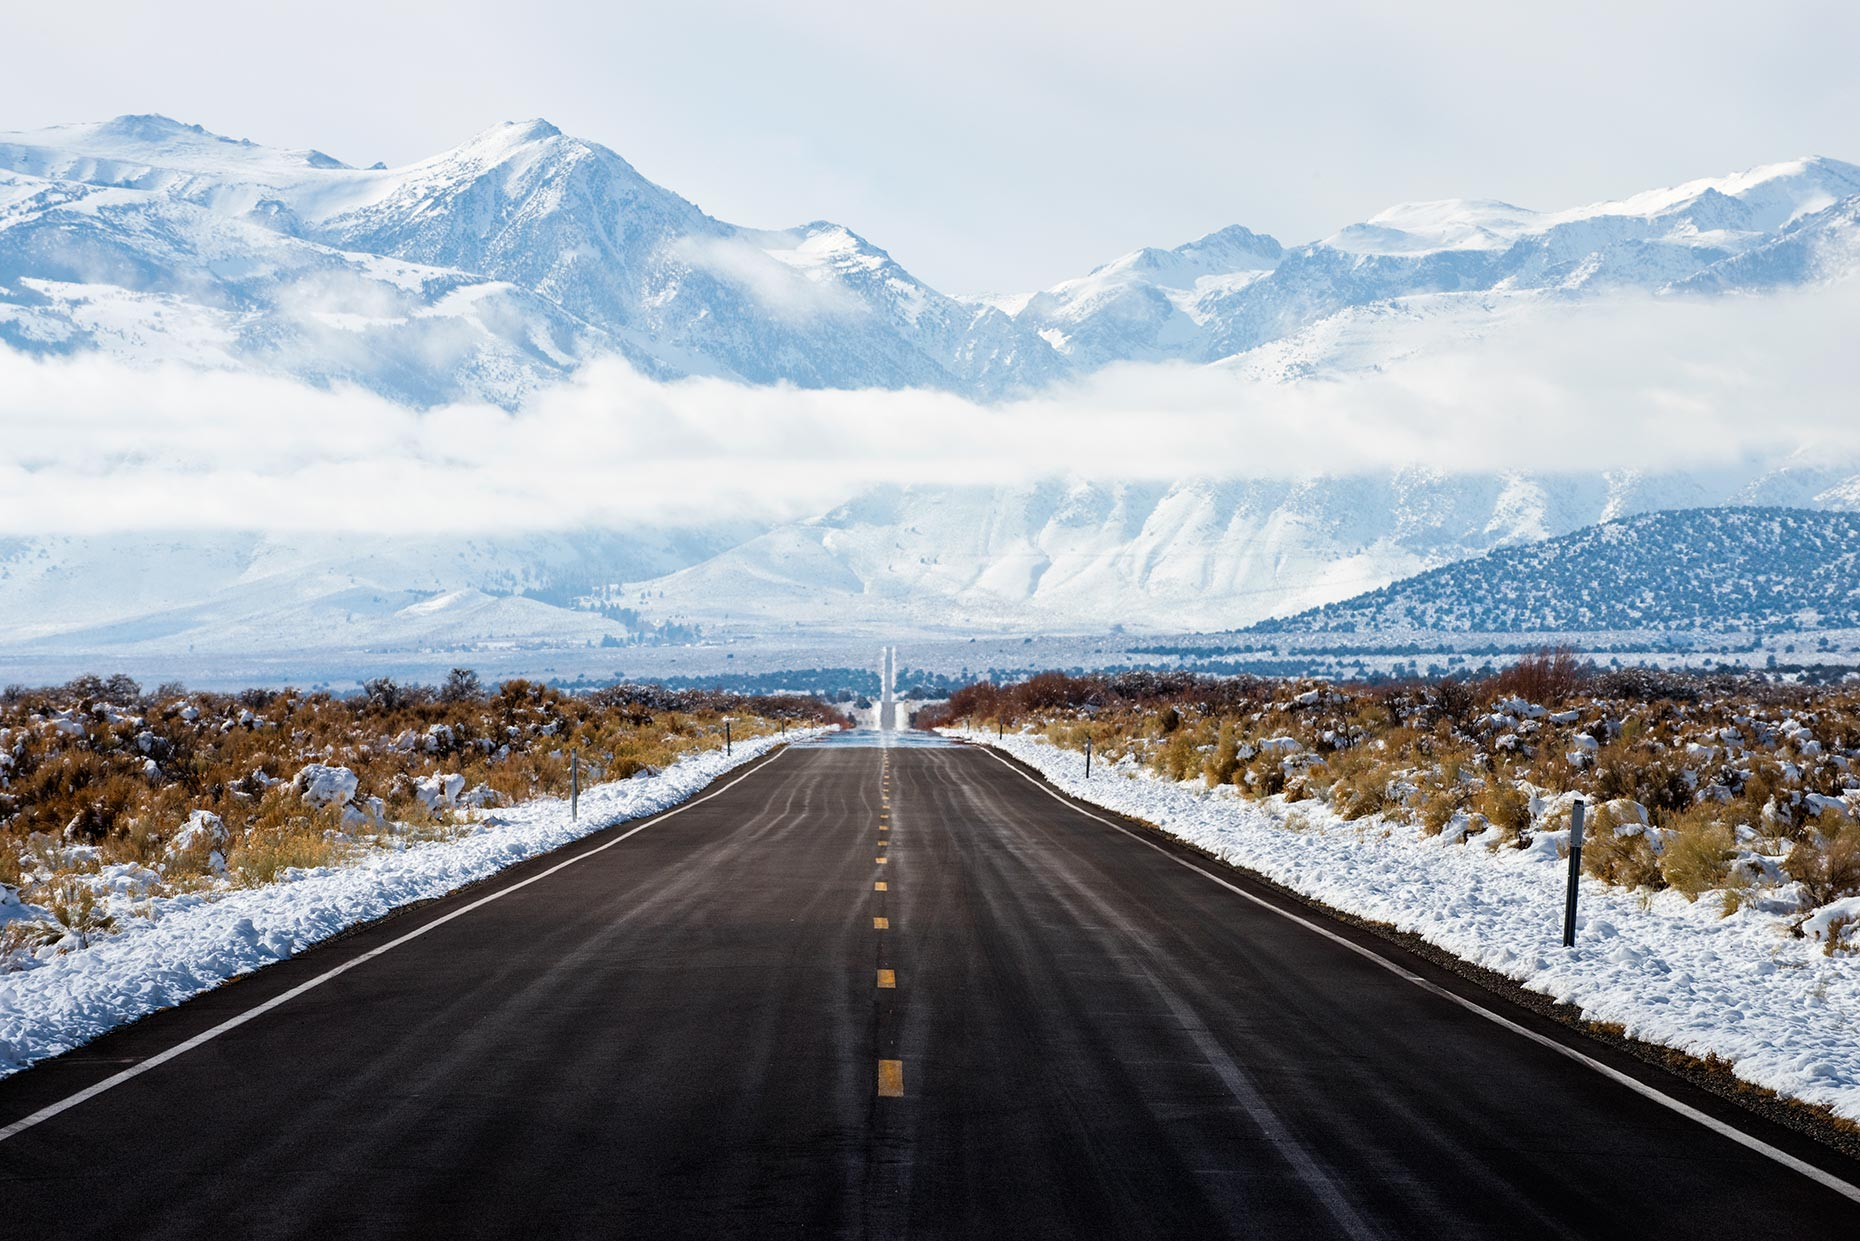 Snowy Mountain Road - Eastern Sierra Nevada, California